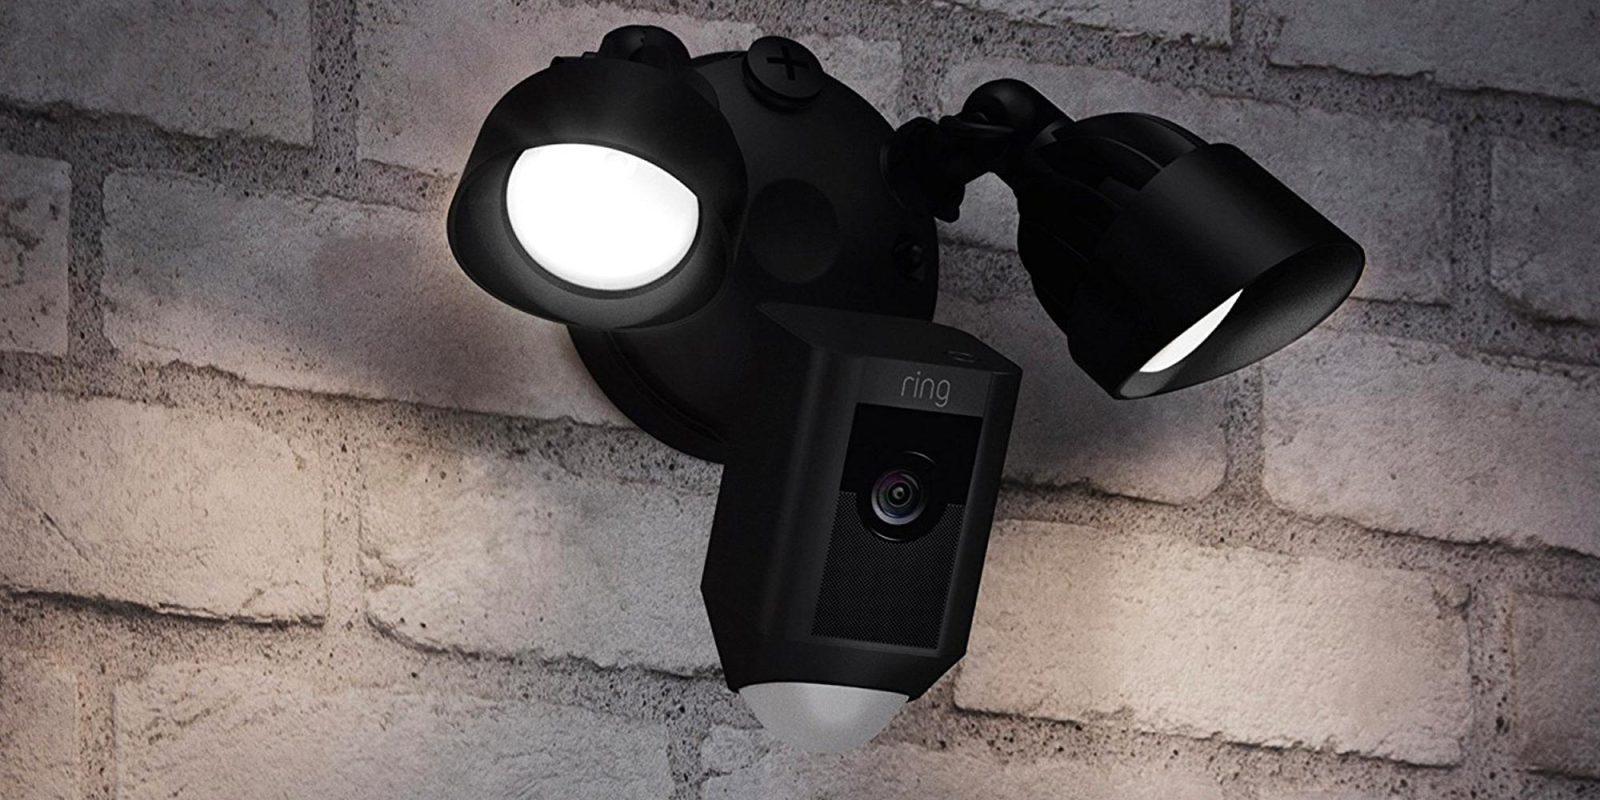 Ring's Floodlight Camera is at one of its best prices ever: $187 (Reg. $249)